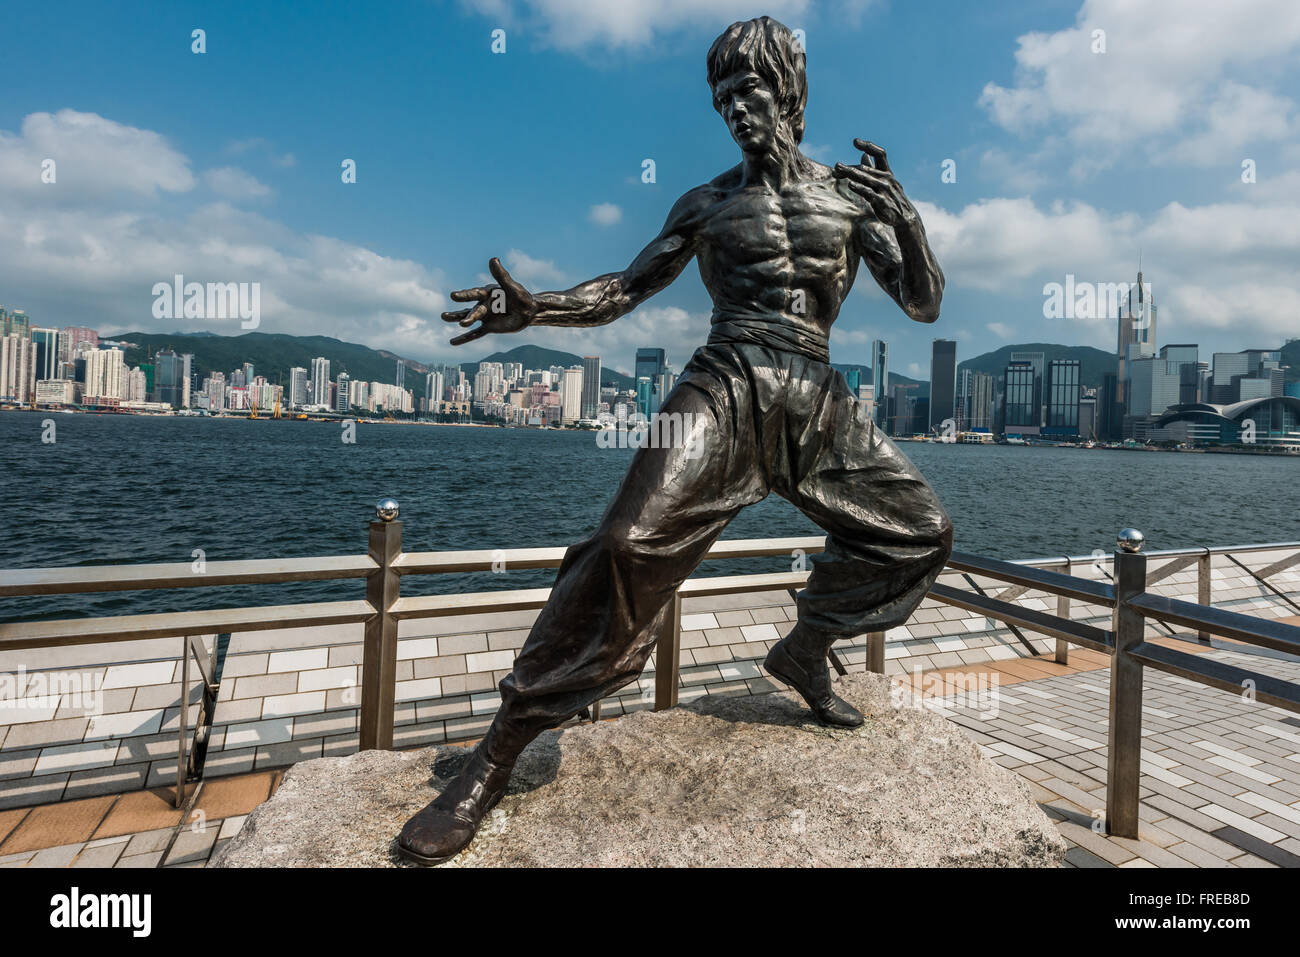 Bruce Lee statue Avenue of Stars Tsim Sha Tsui Kowloon in Hong Kong - Stock Image